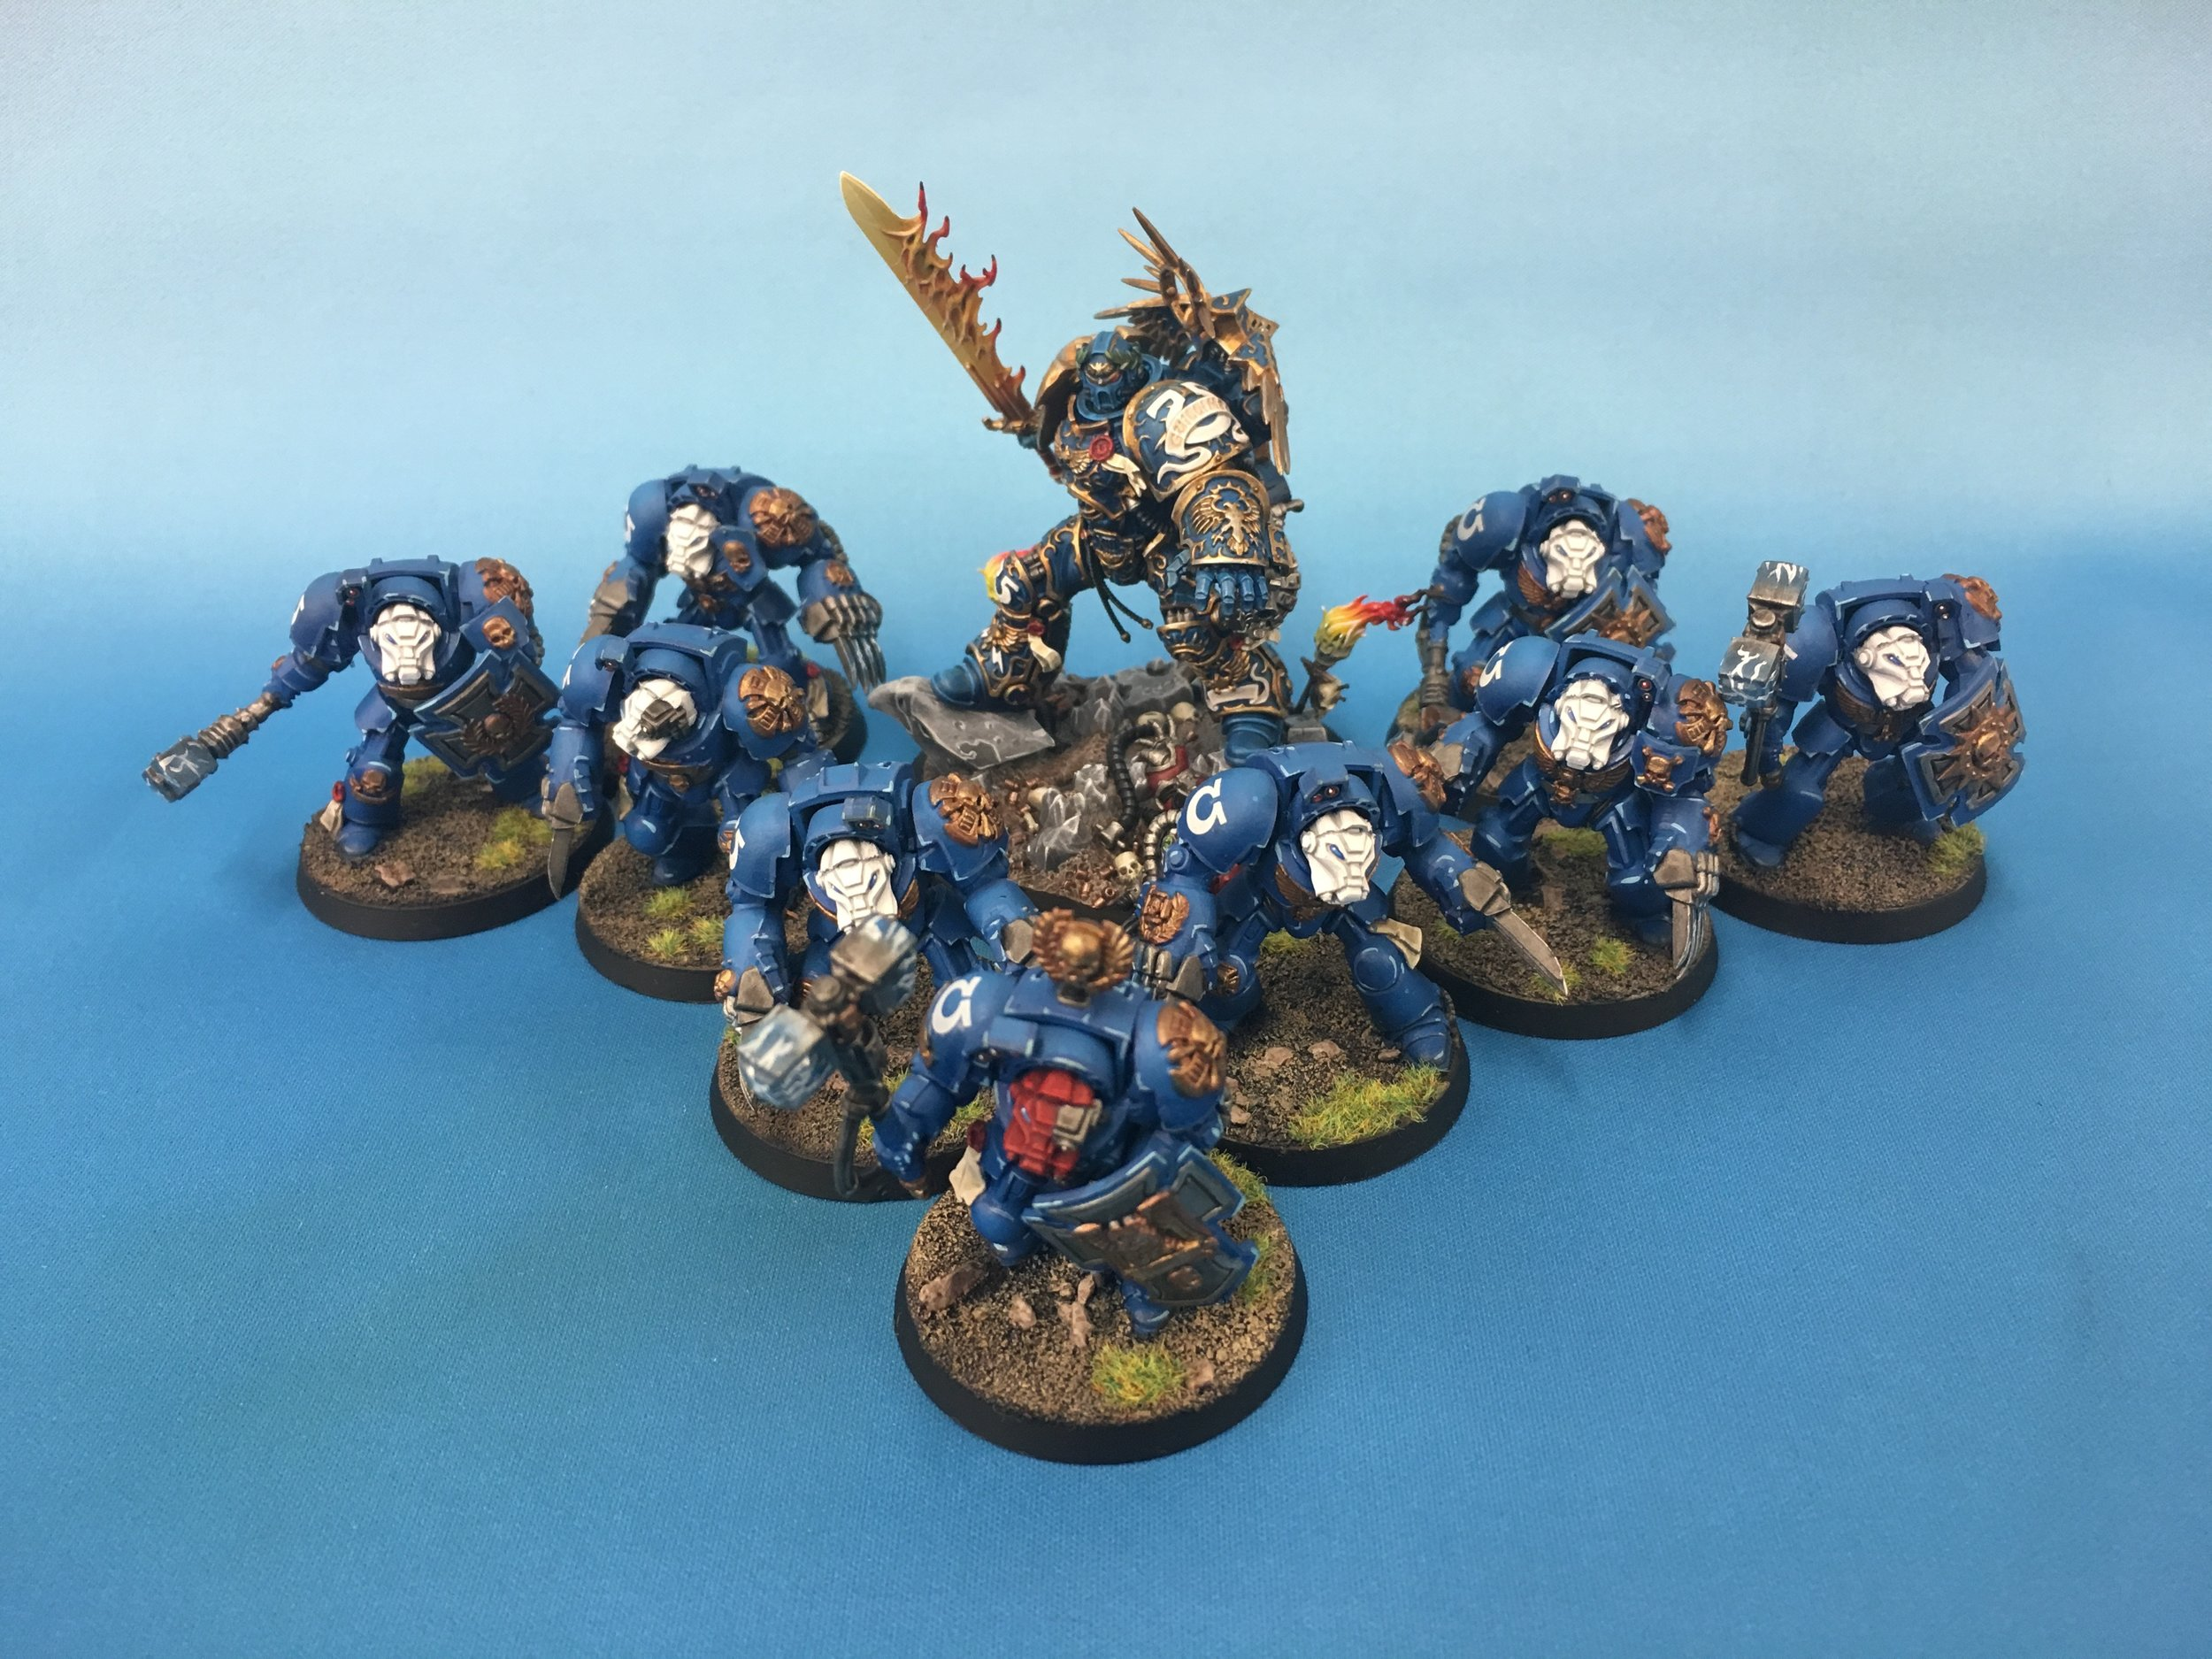 Another TT+ Guilliman with Table Top Standard Terminators